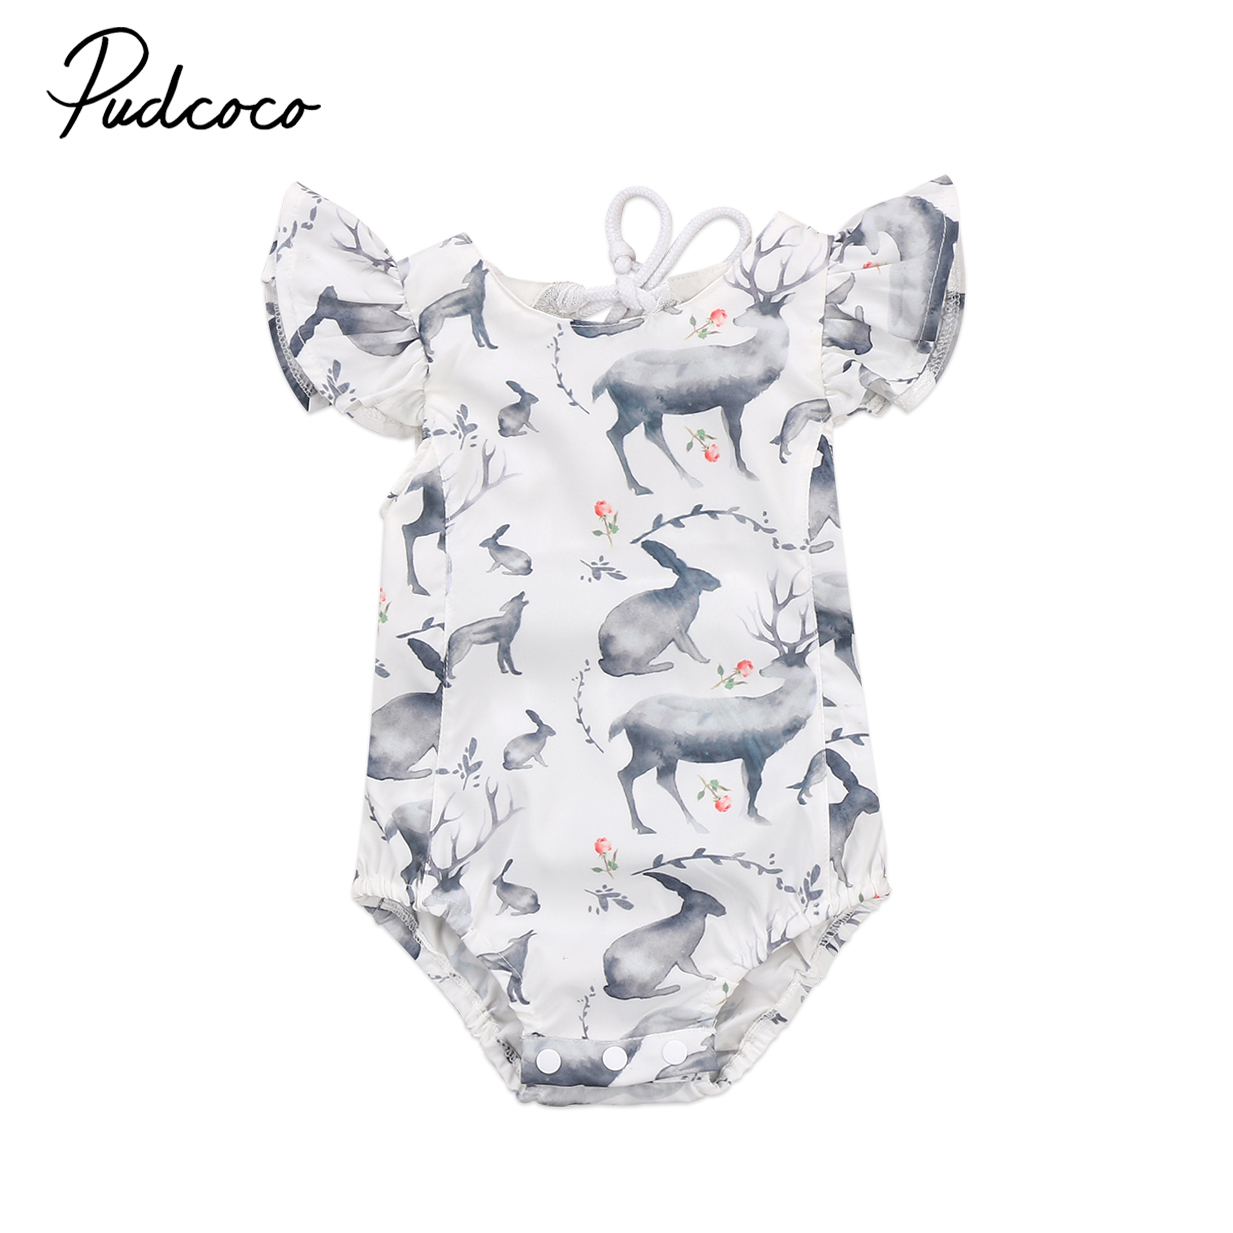 Pudcoco Summer Newborn Baby Girl Animals Deer Romper Jumpsuit Outfit Cotton Backless One-Piece Sunsuit Clothes kawaii shark print newborn baby girls strap romper jumpsuit one piece sunsuit outfit clothes